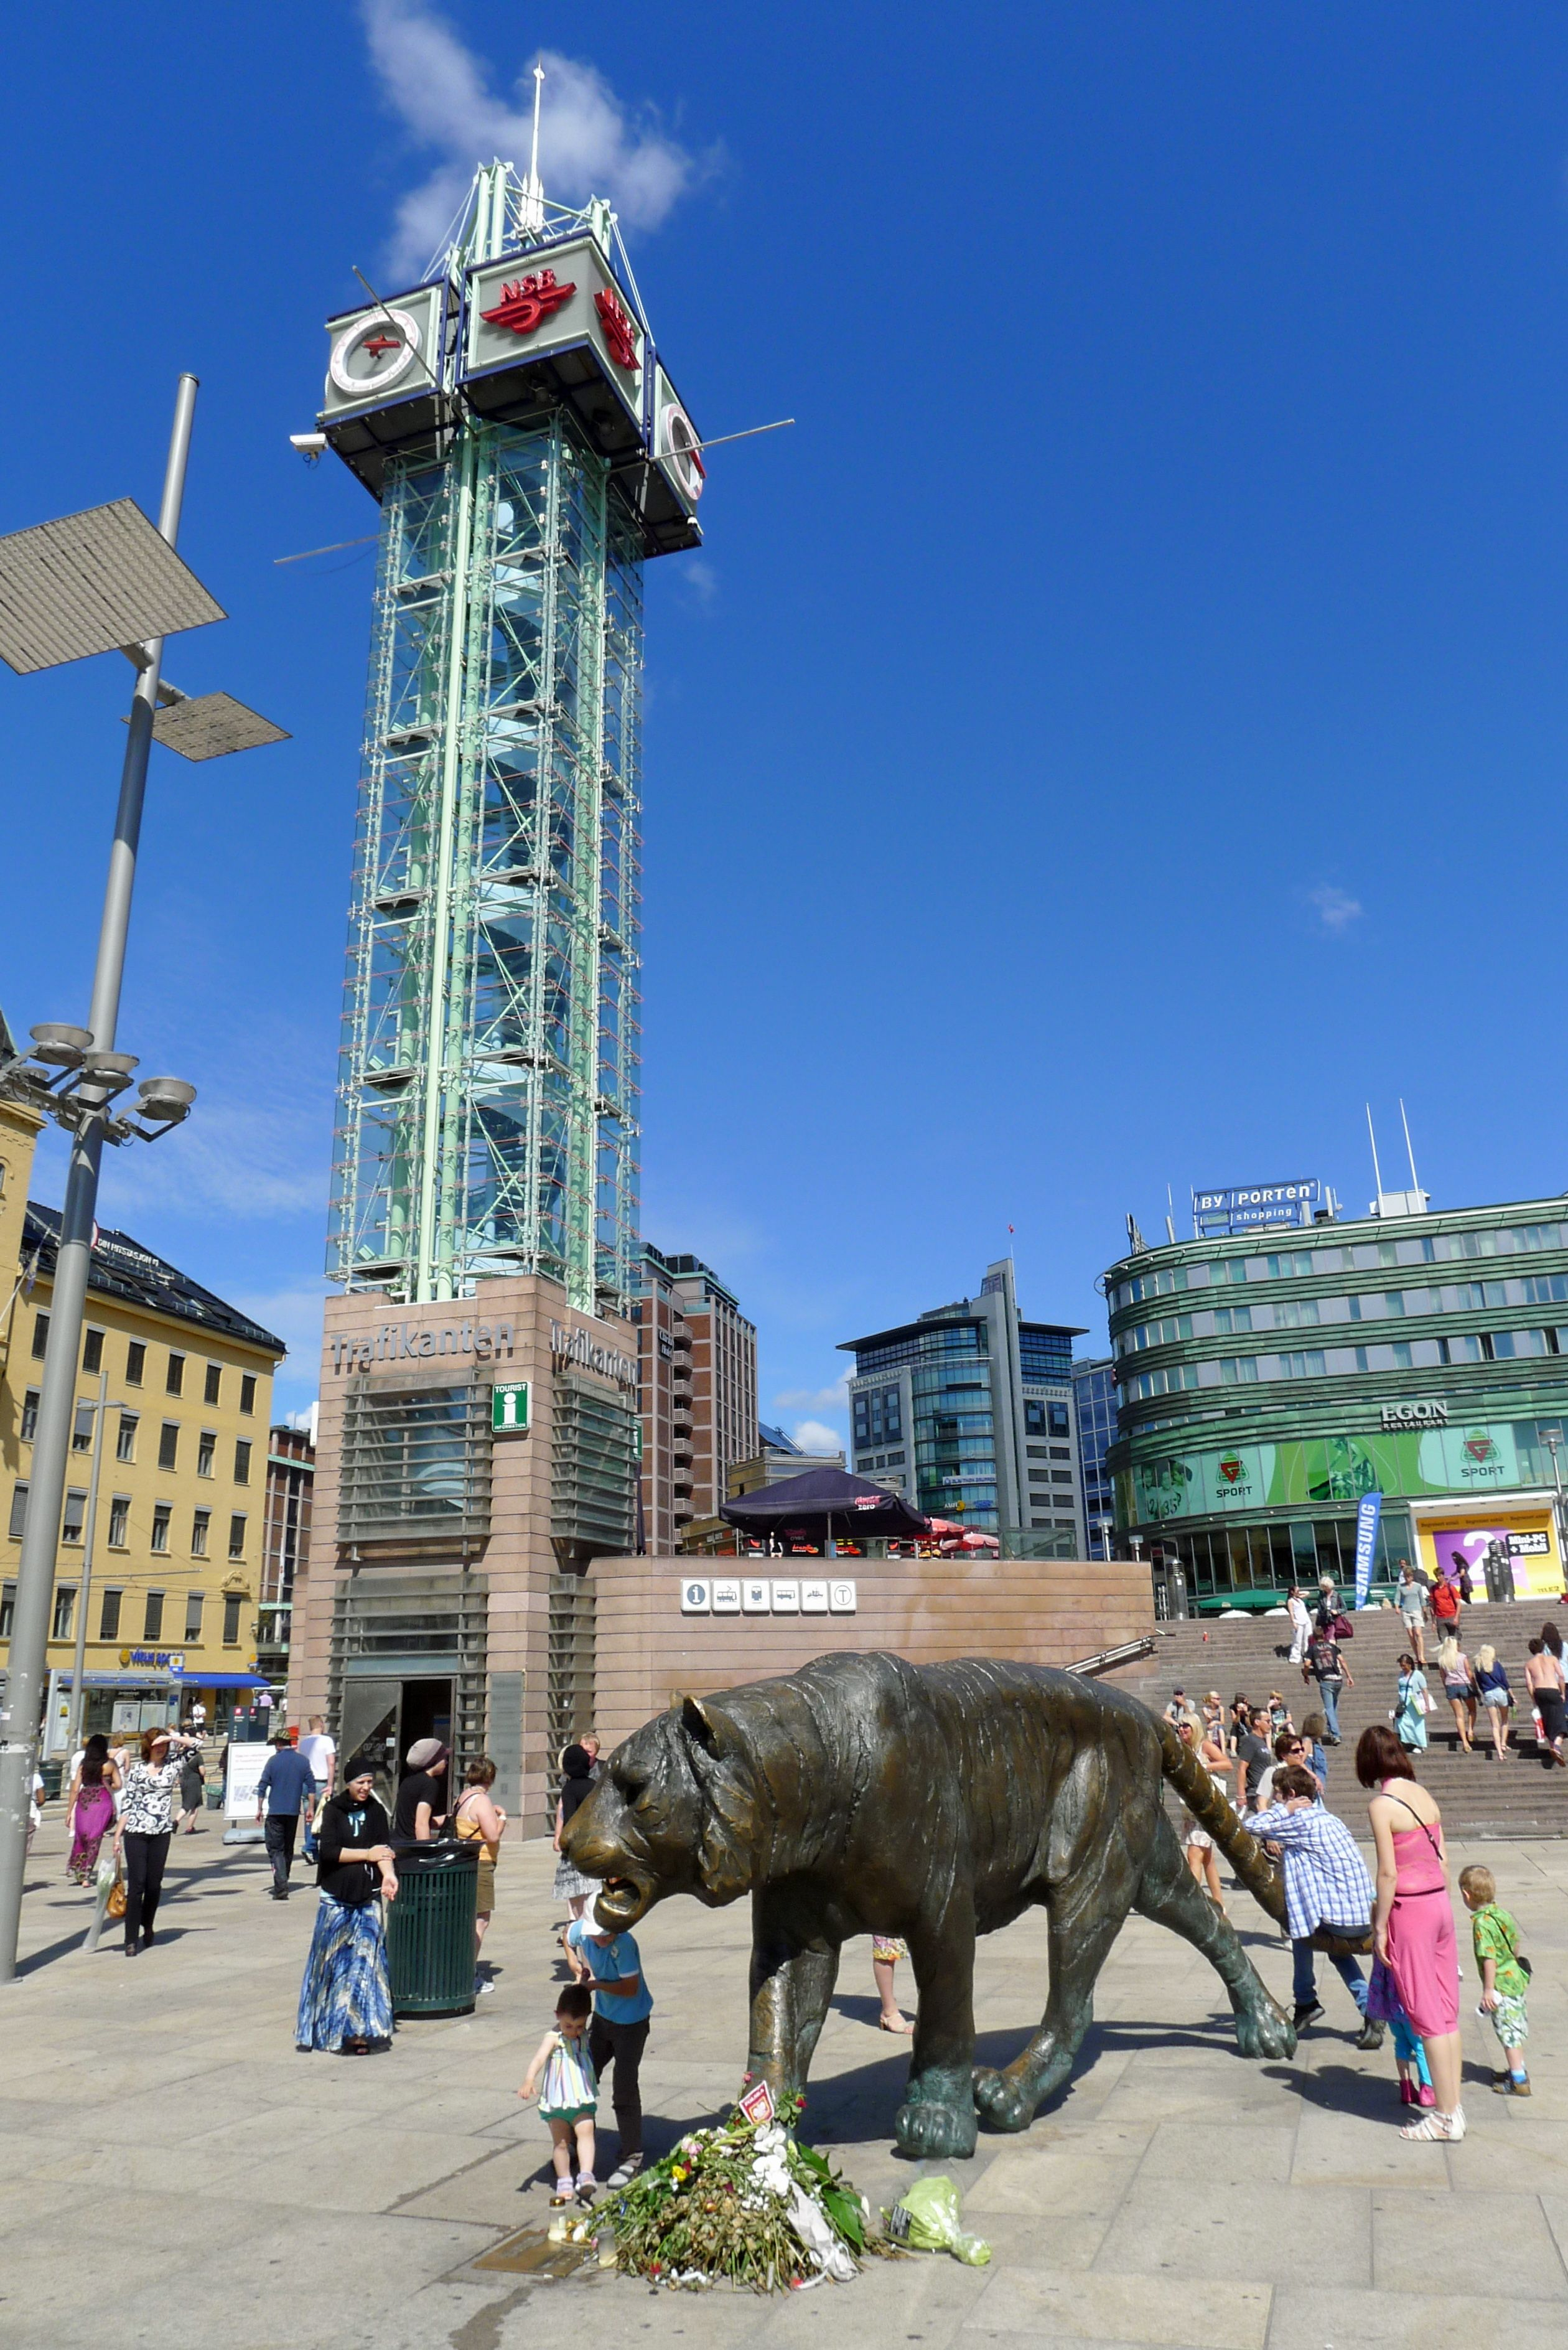 Public Square In Oslo Norway. Oslofjord And